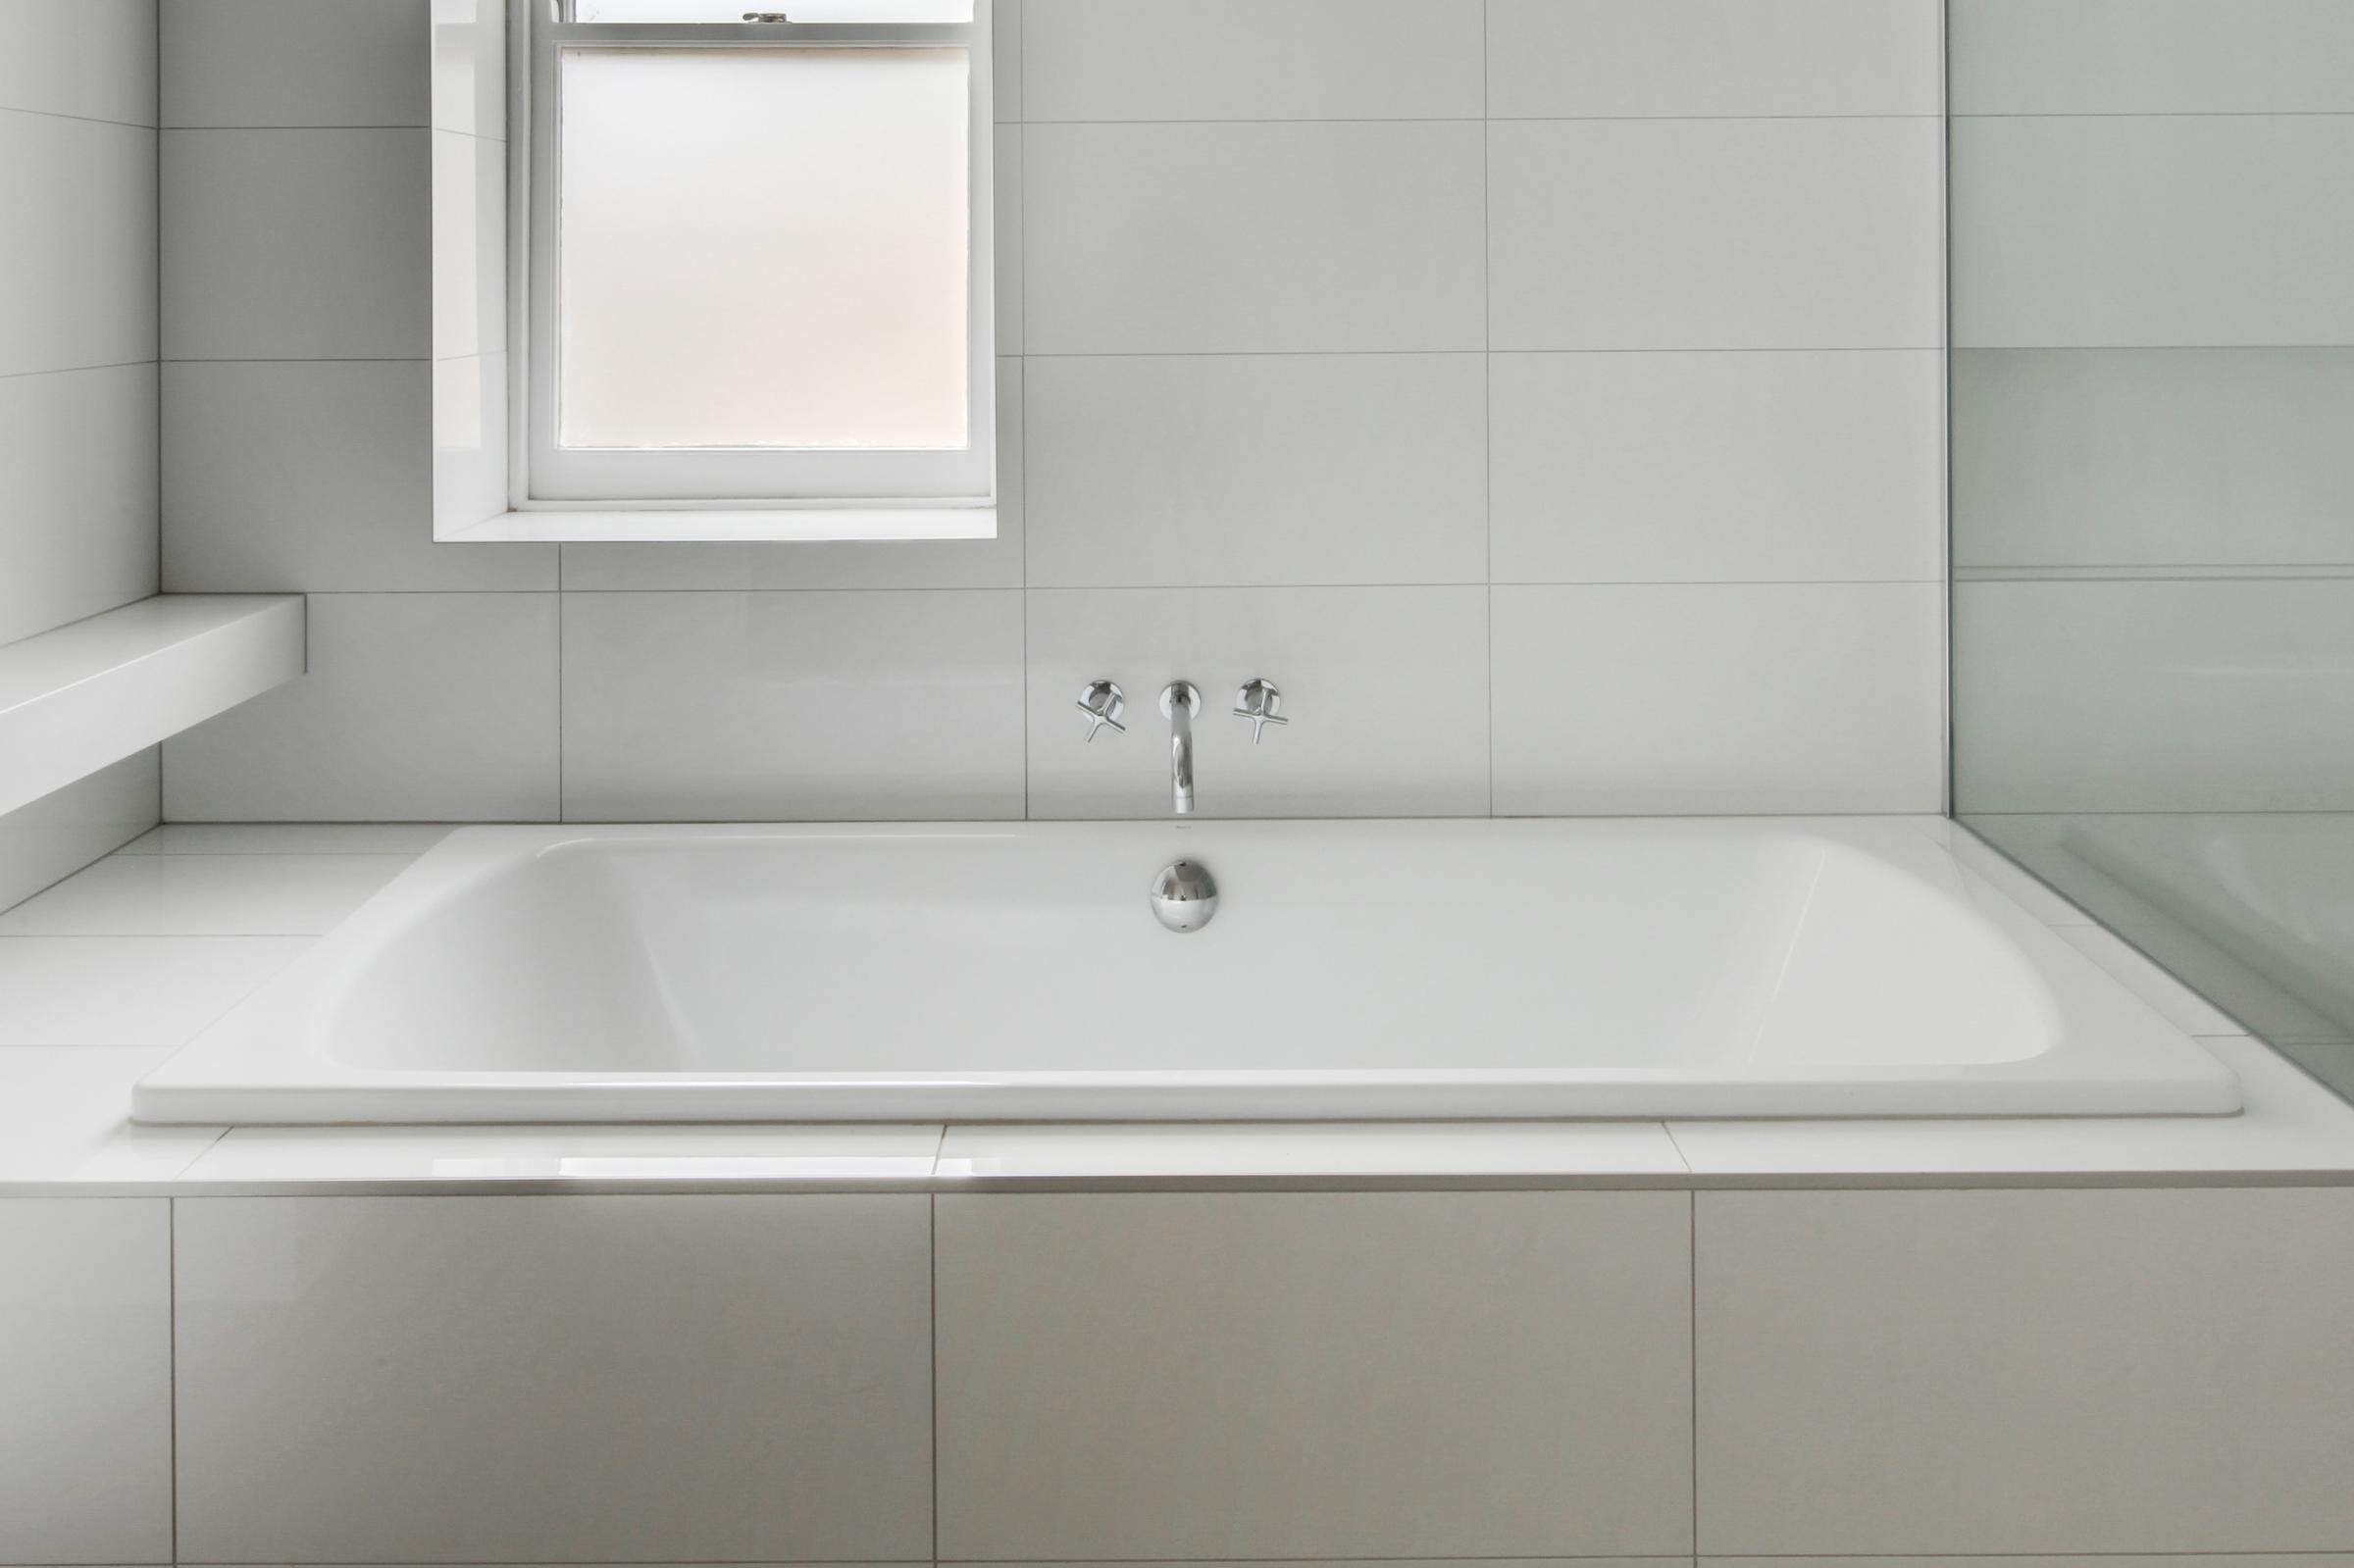 4 Must-Haves for the Easiest-to-Clean Bathroom, Ever